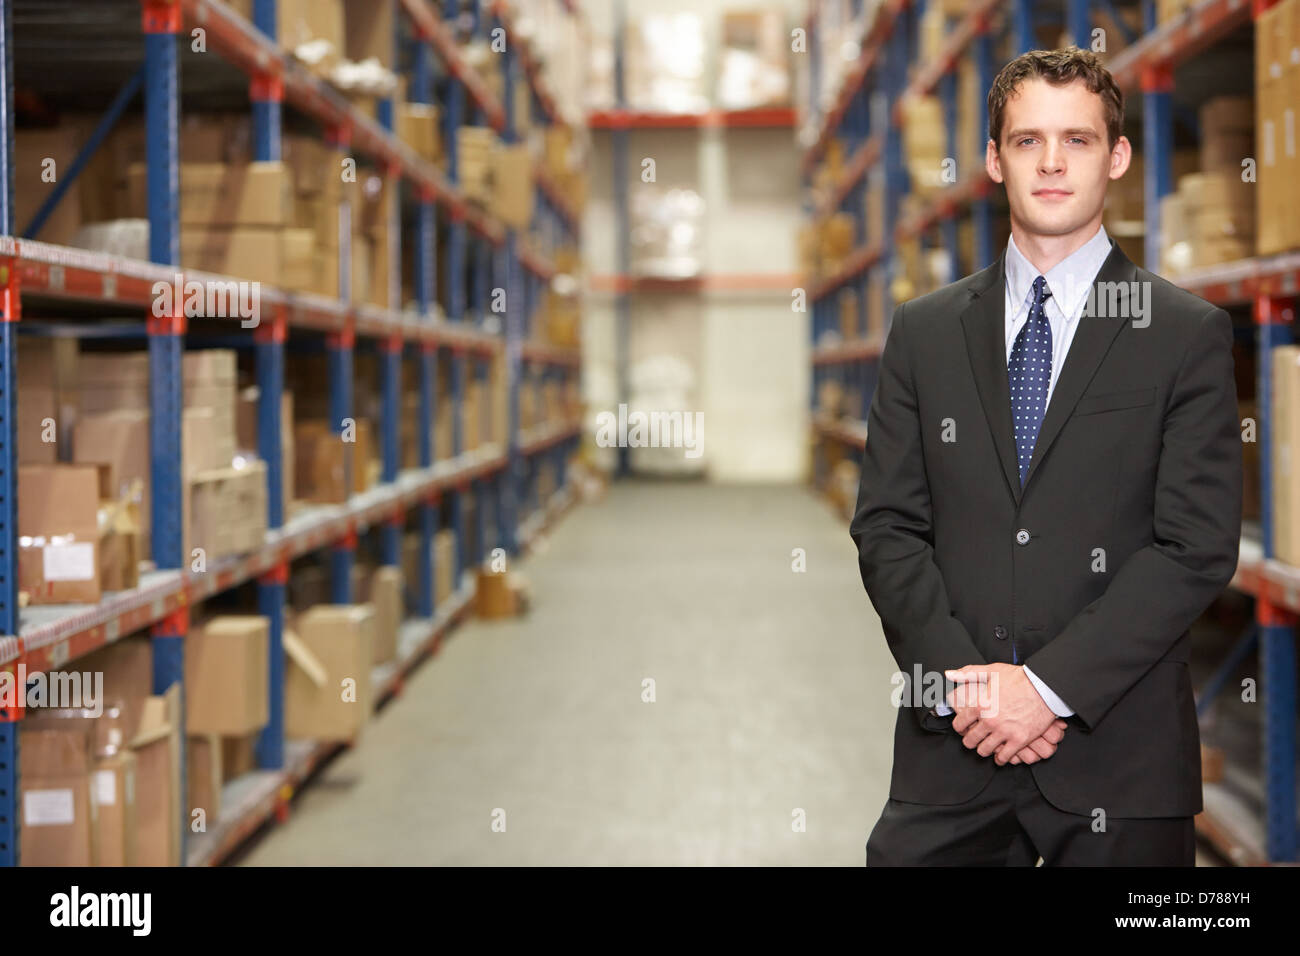 Portrait Of Manager In Warehouse - Stock Image